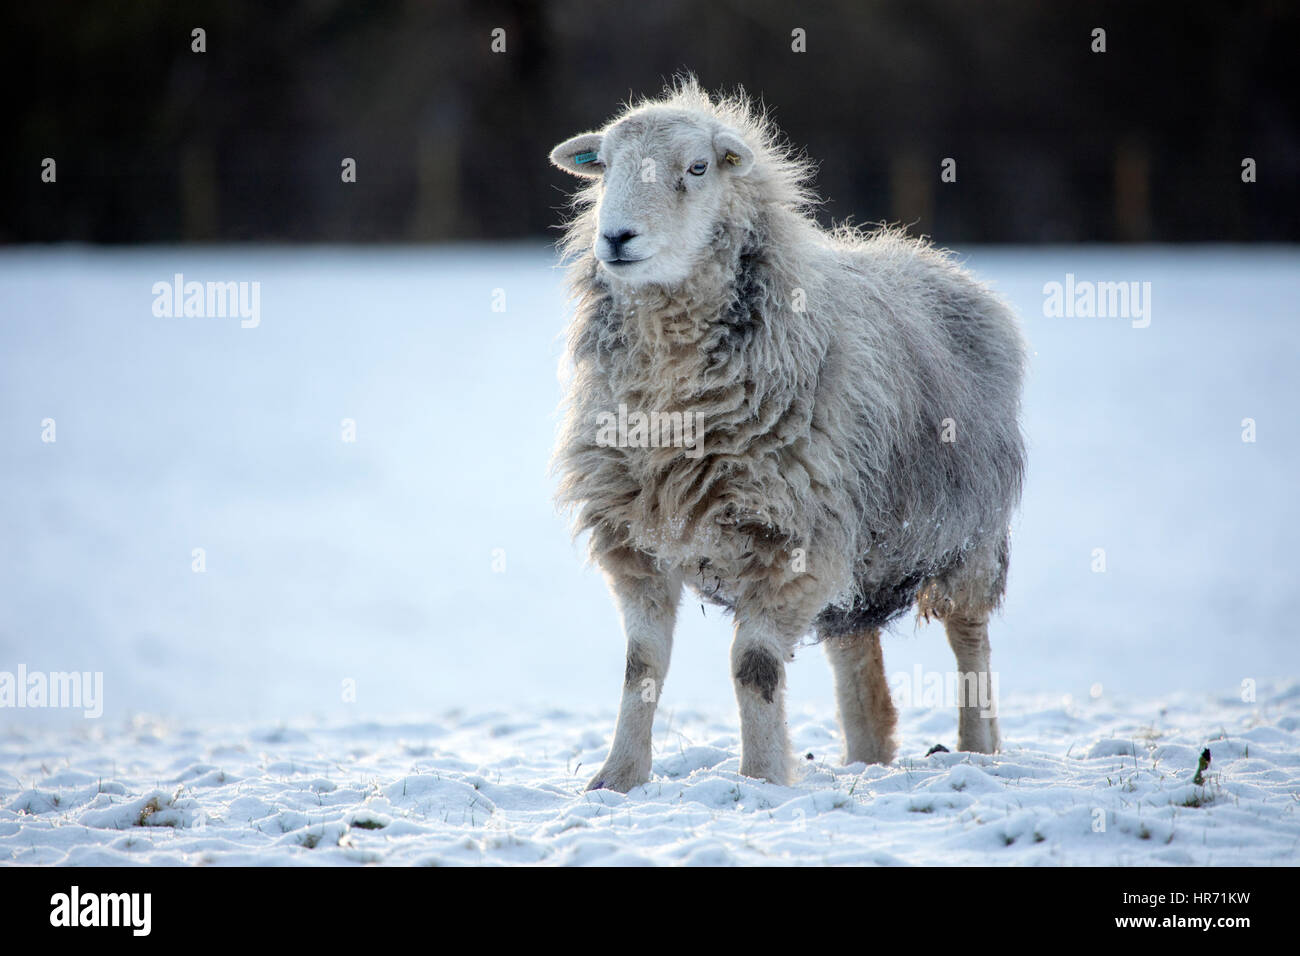 A single herdwick sheep in a snow covered field near to the village of Nannerch in North Wales after recent snow - Stock Image